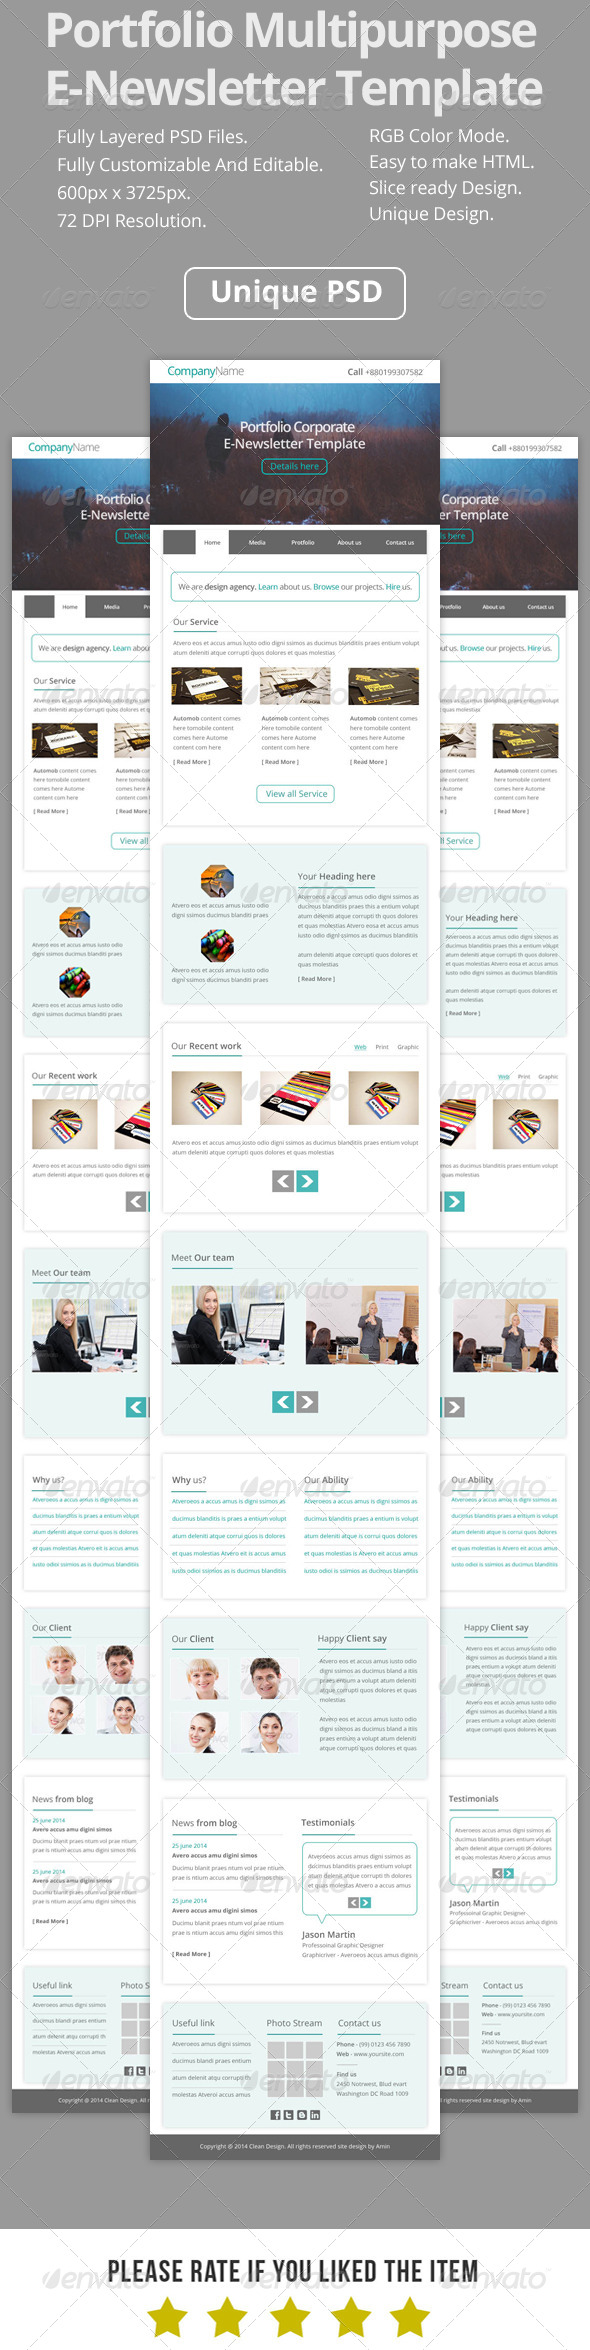 GraphicRiver Portfolio Multipurpose E-Newsletter Template V7 7981309